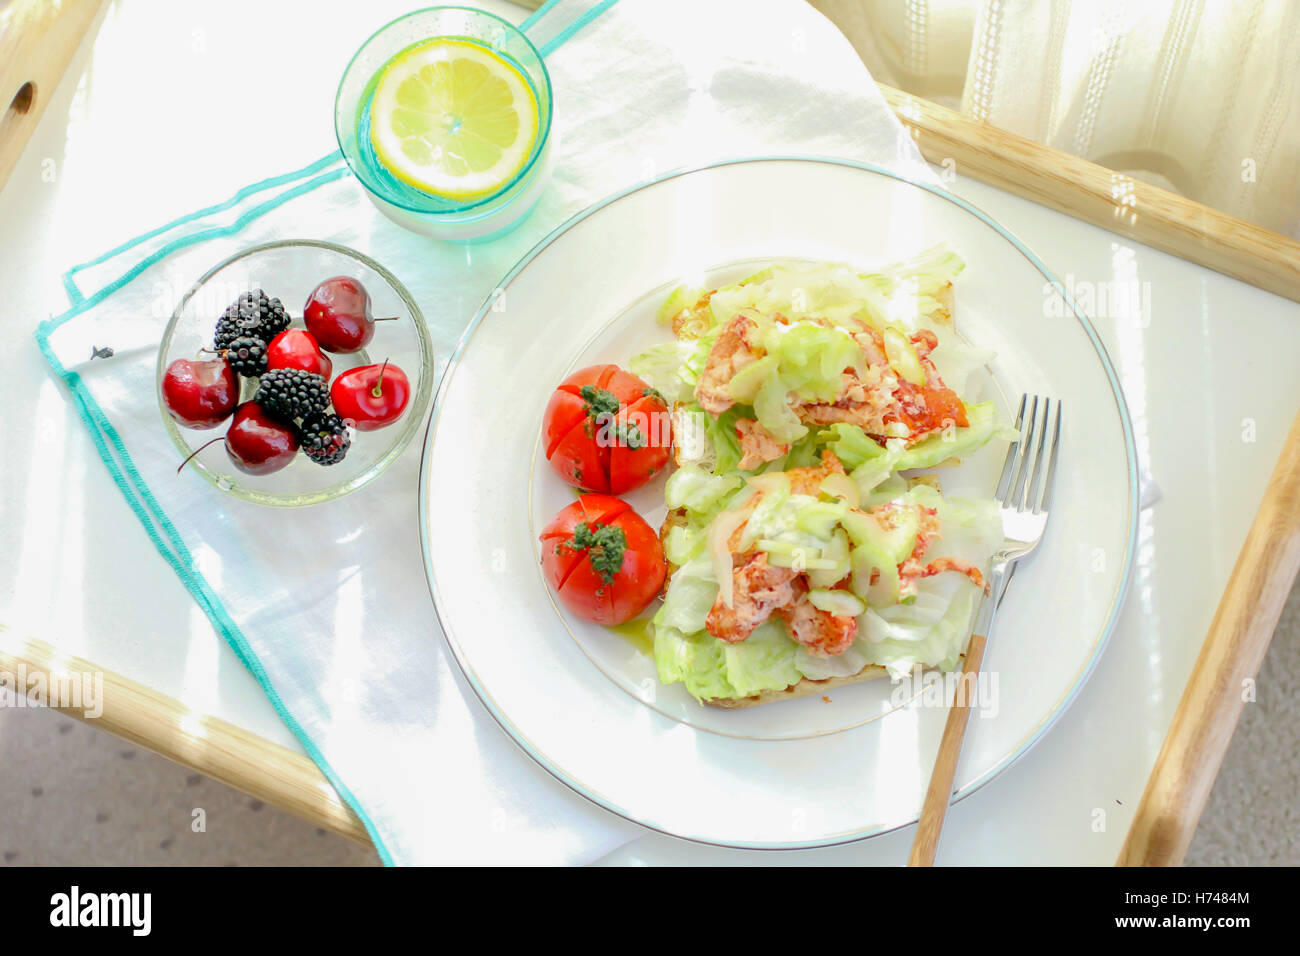 Healthy meal with tomato salad, raspberry and lemonade - Stock Image